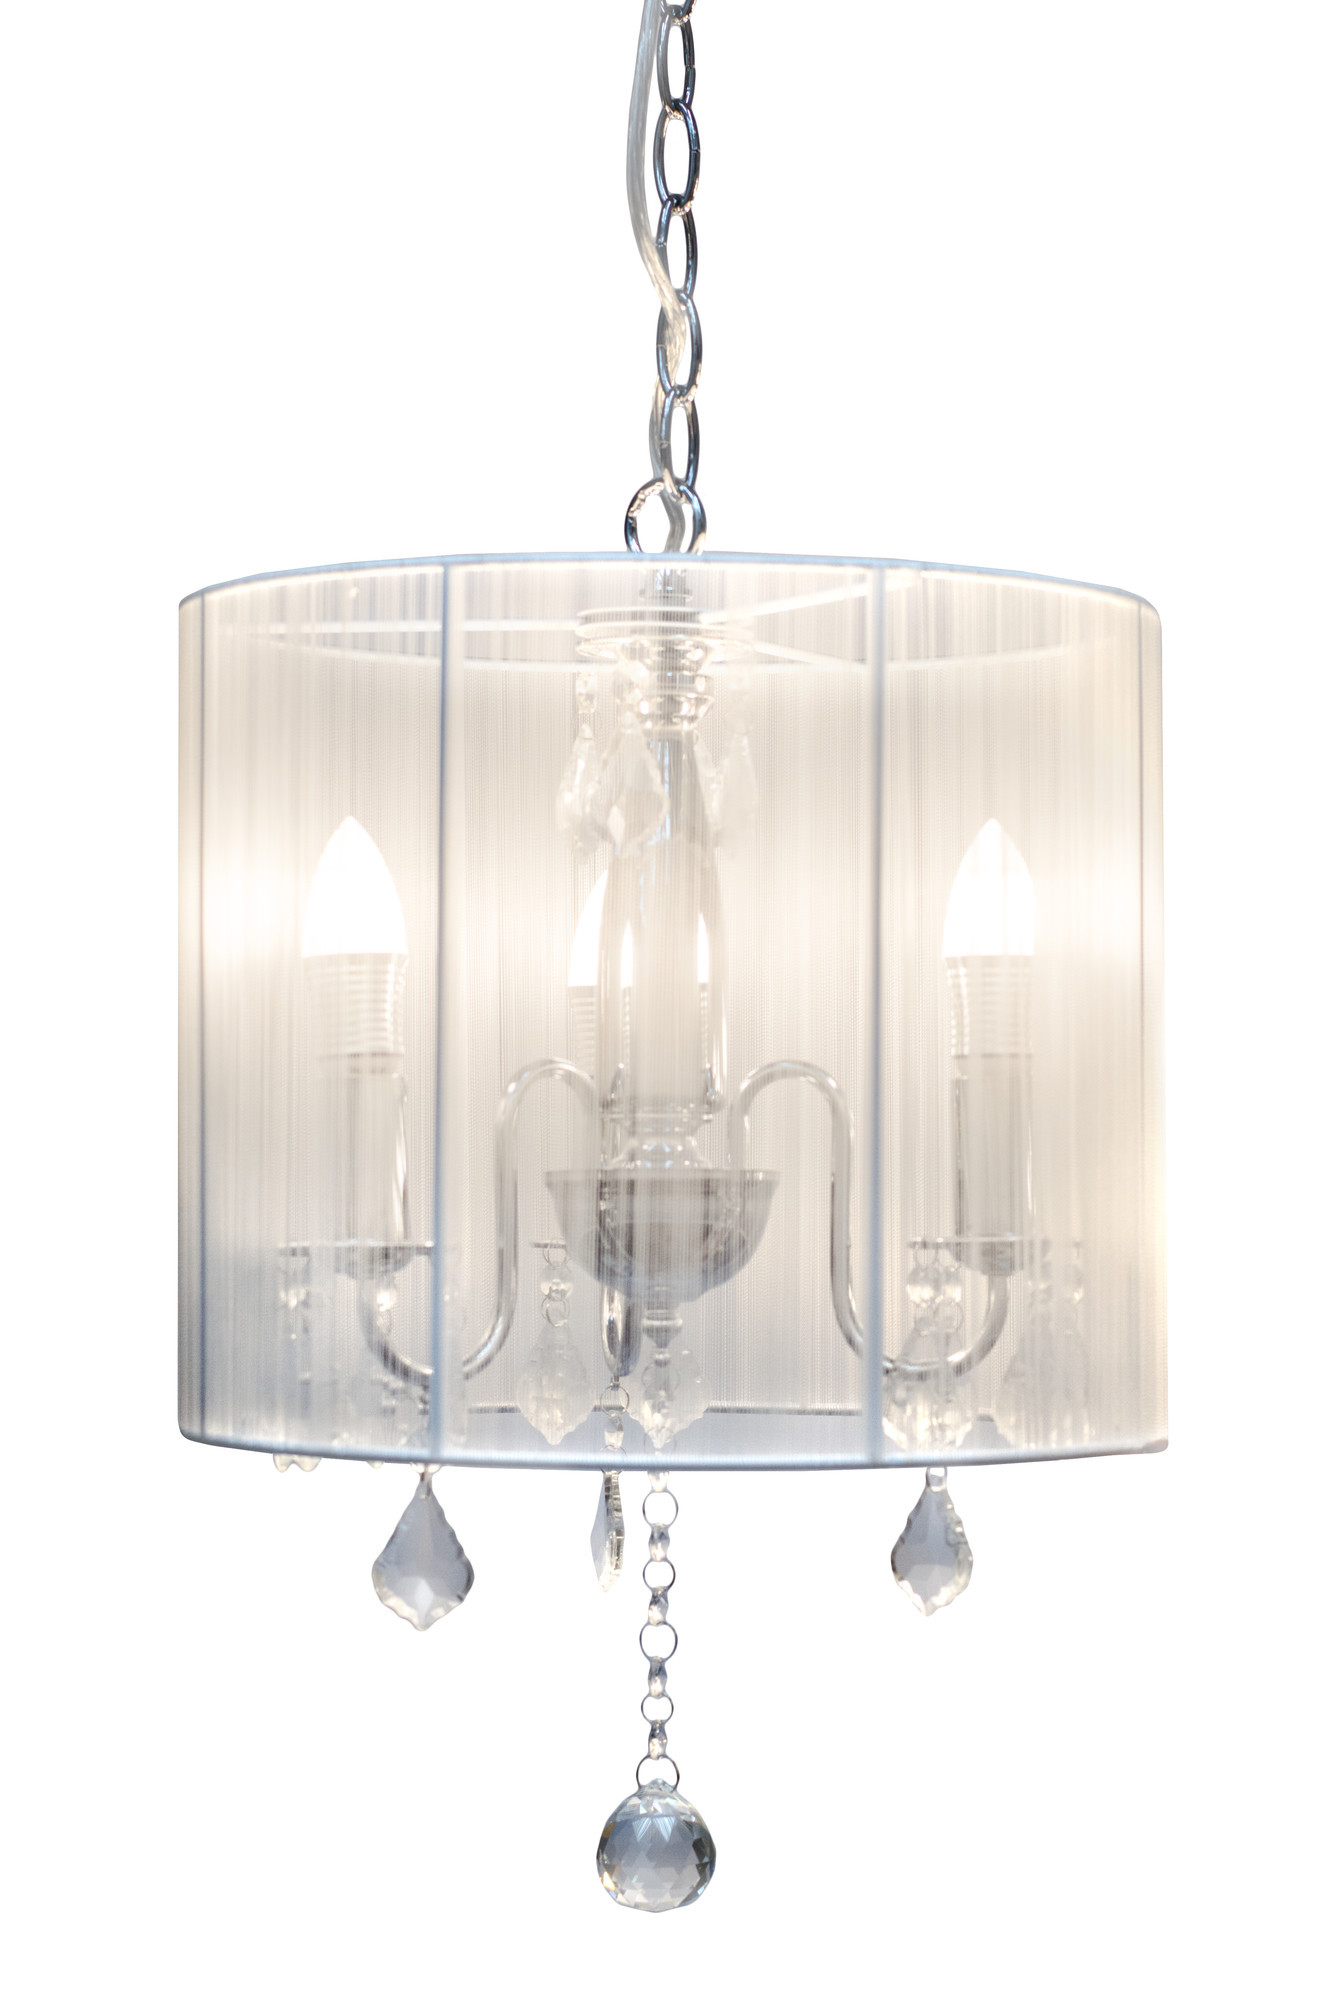 New pairs 3 lights chandelier with white shade ebay - White chandelier with shades ...